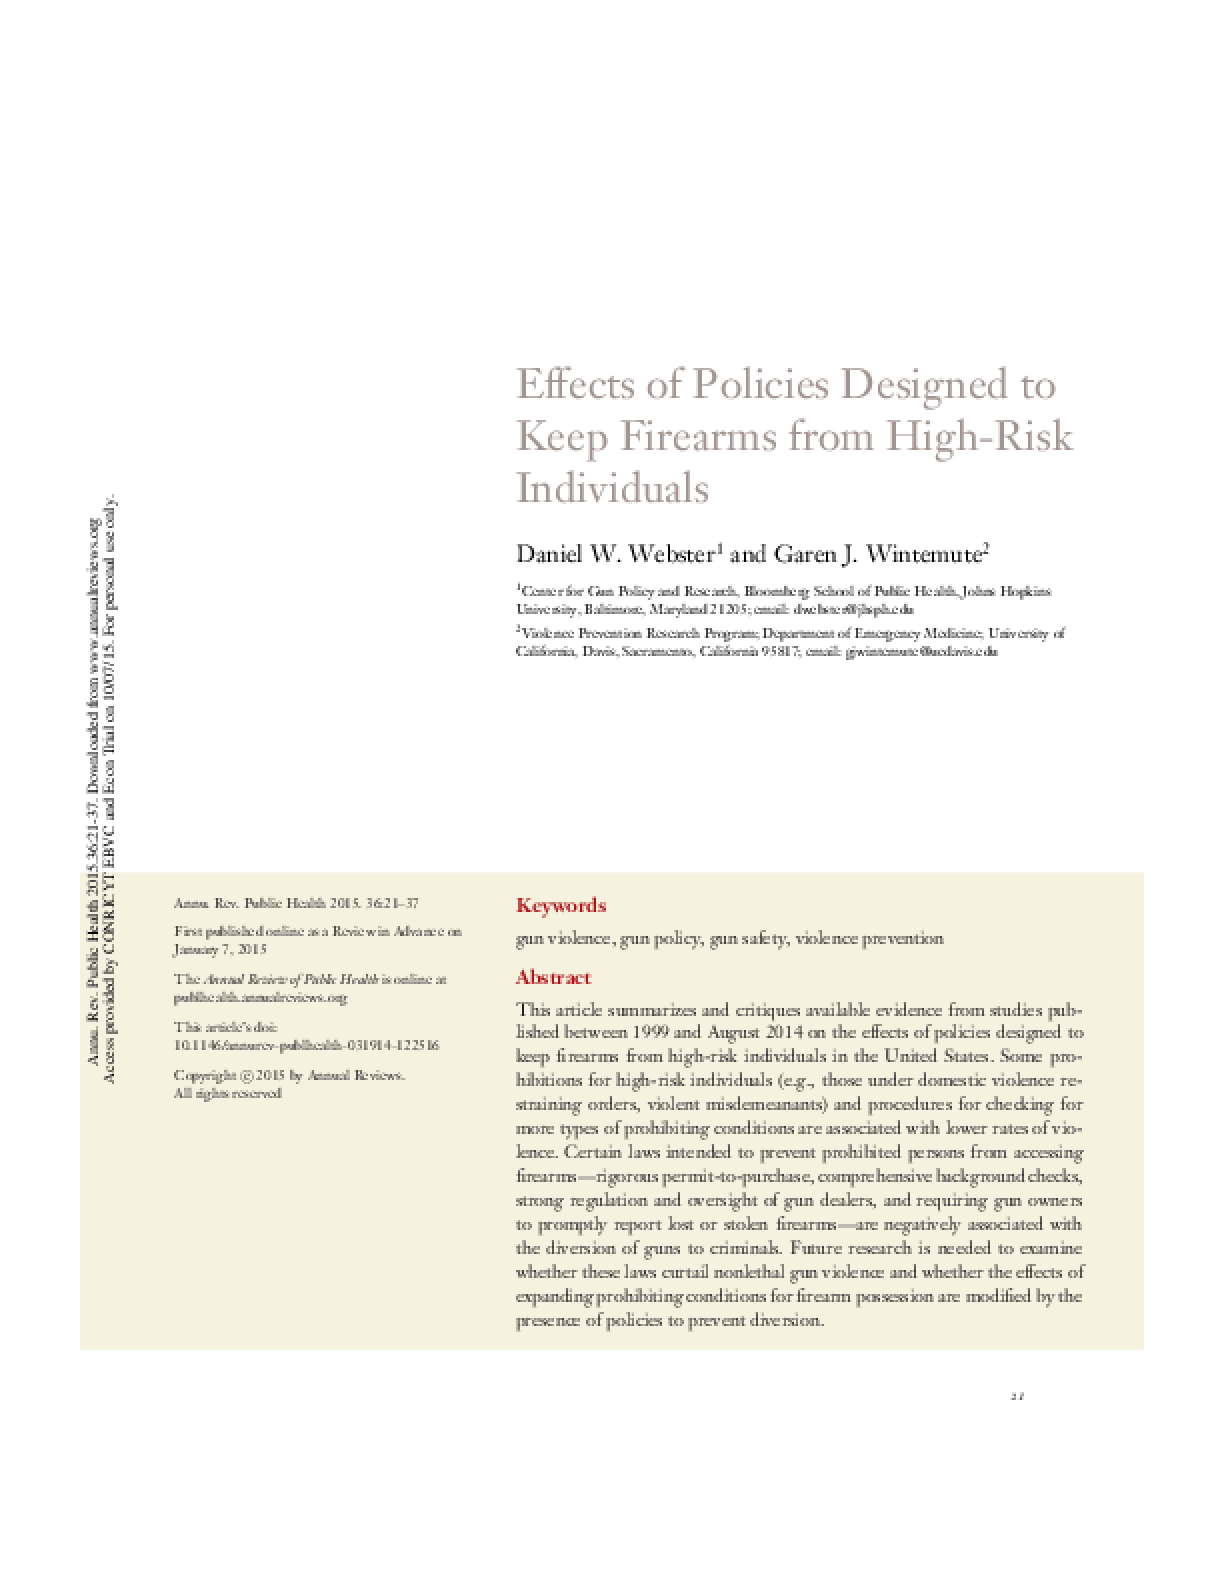 Effects of Policies Designed to Keep Firearms from High-Risk Individuals